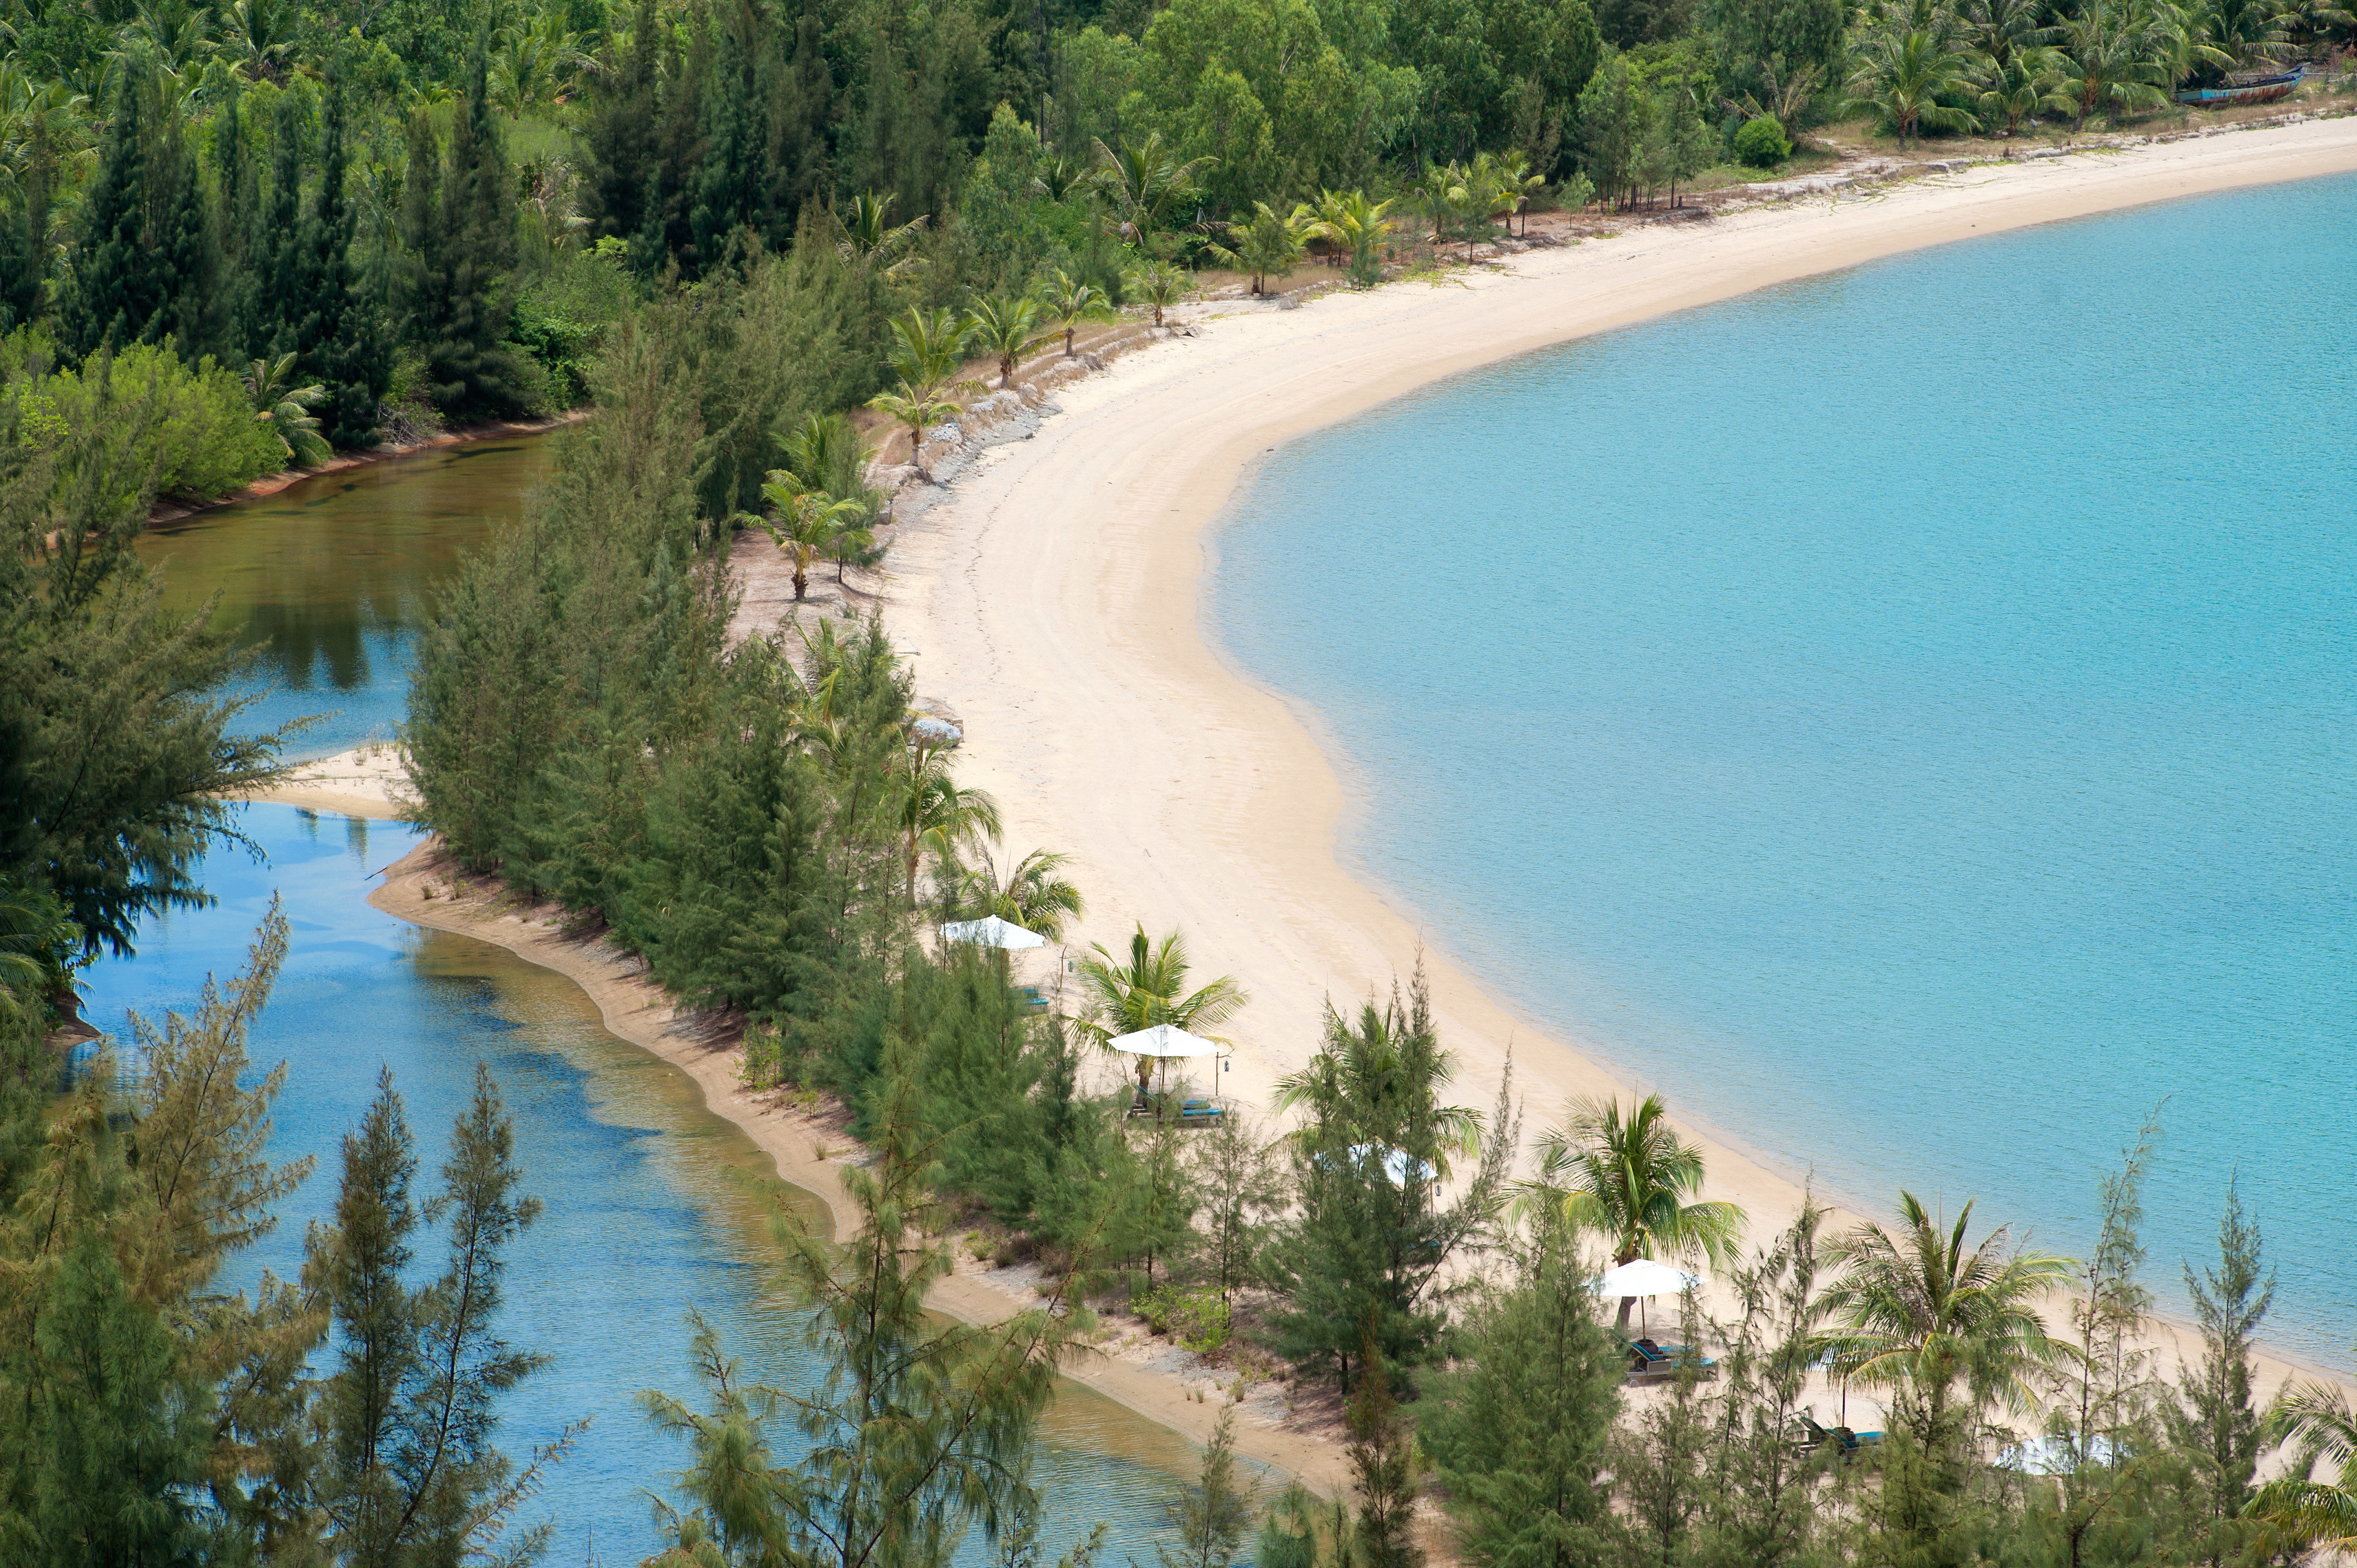 Beach Country Eco Forest Grounds Jungle Mountains Nature Outdoor Activities Scenic views Tropical Waterfront tree water River grass ecosystem reservoir Lake waterway edge Lagoon surrounded